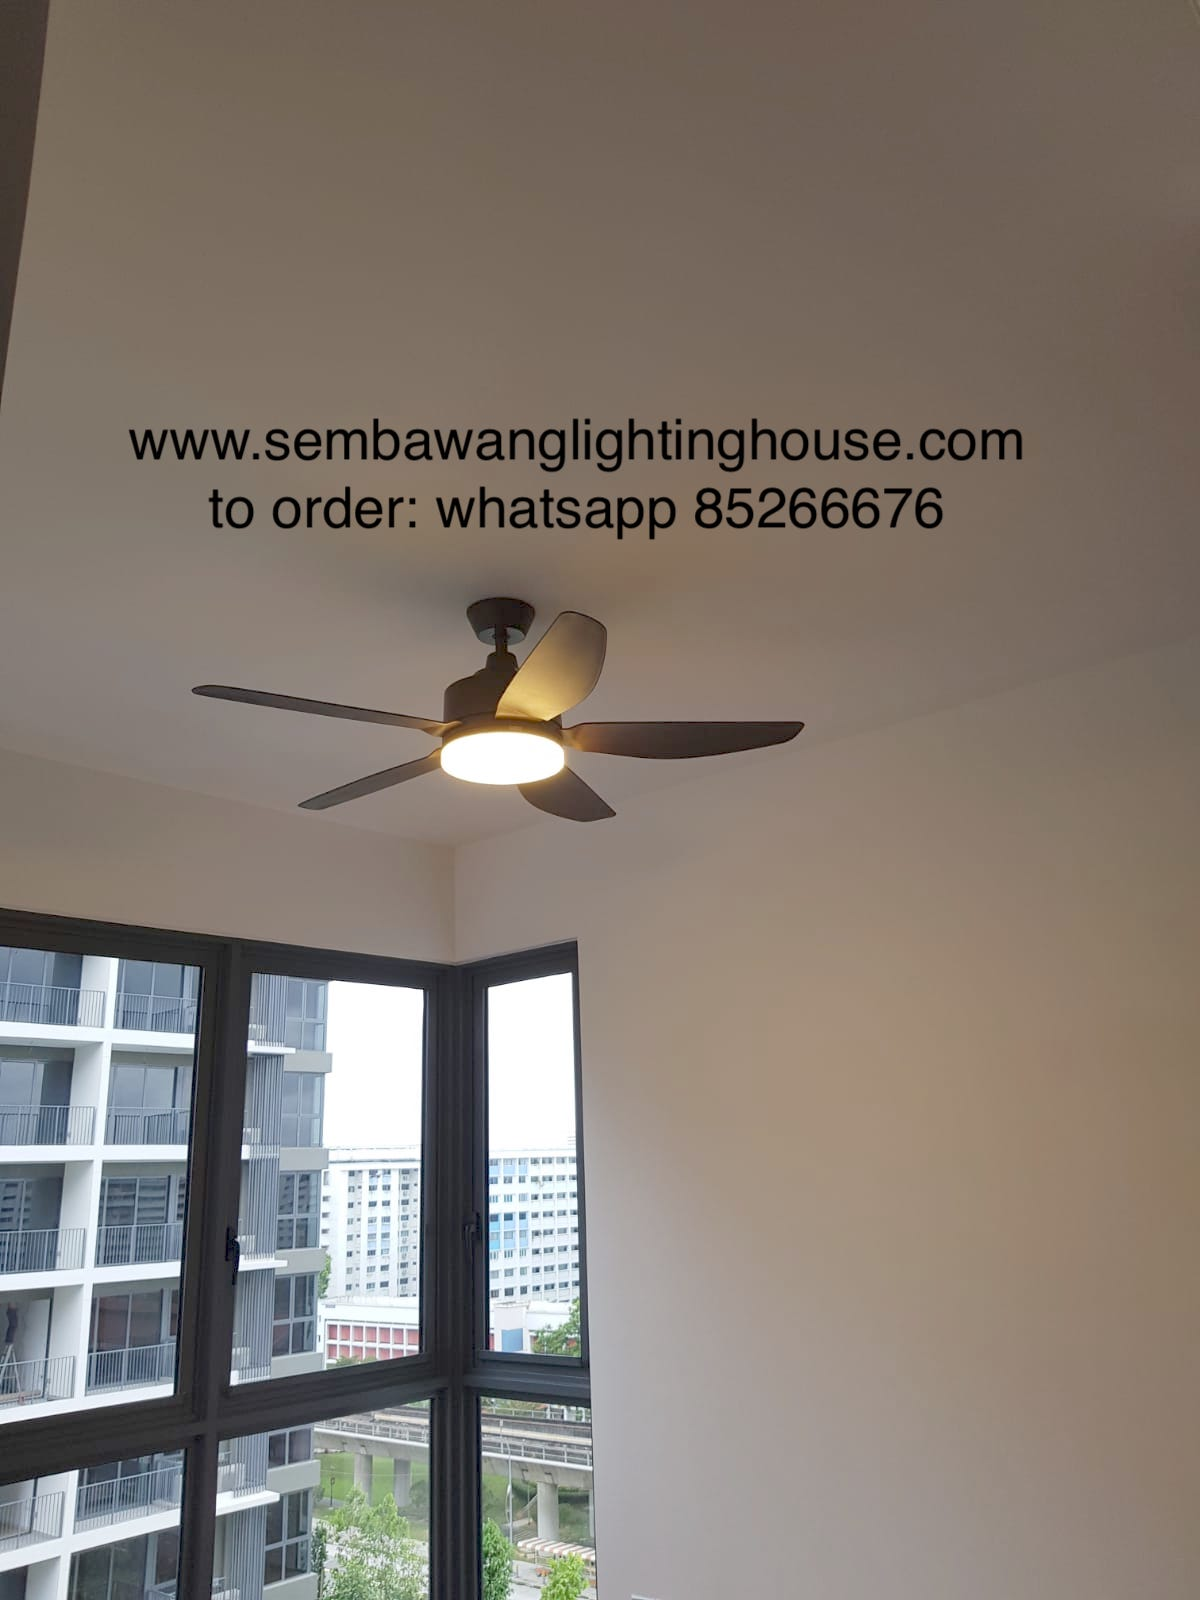 crestar-airis-5-blade-dark-brown-led-ceiling-fan-sample-sembawang-lighting-house-15.jpg